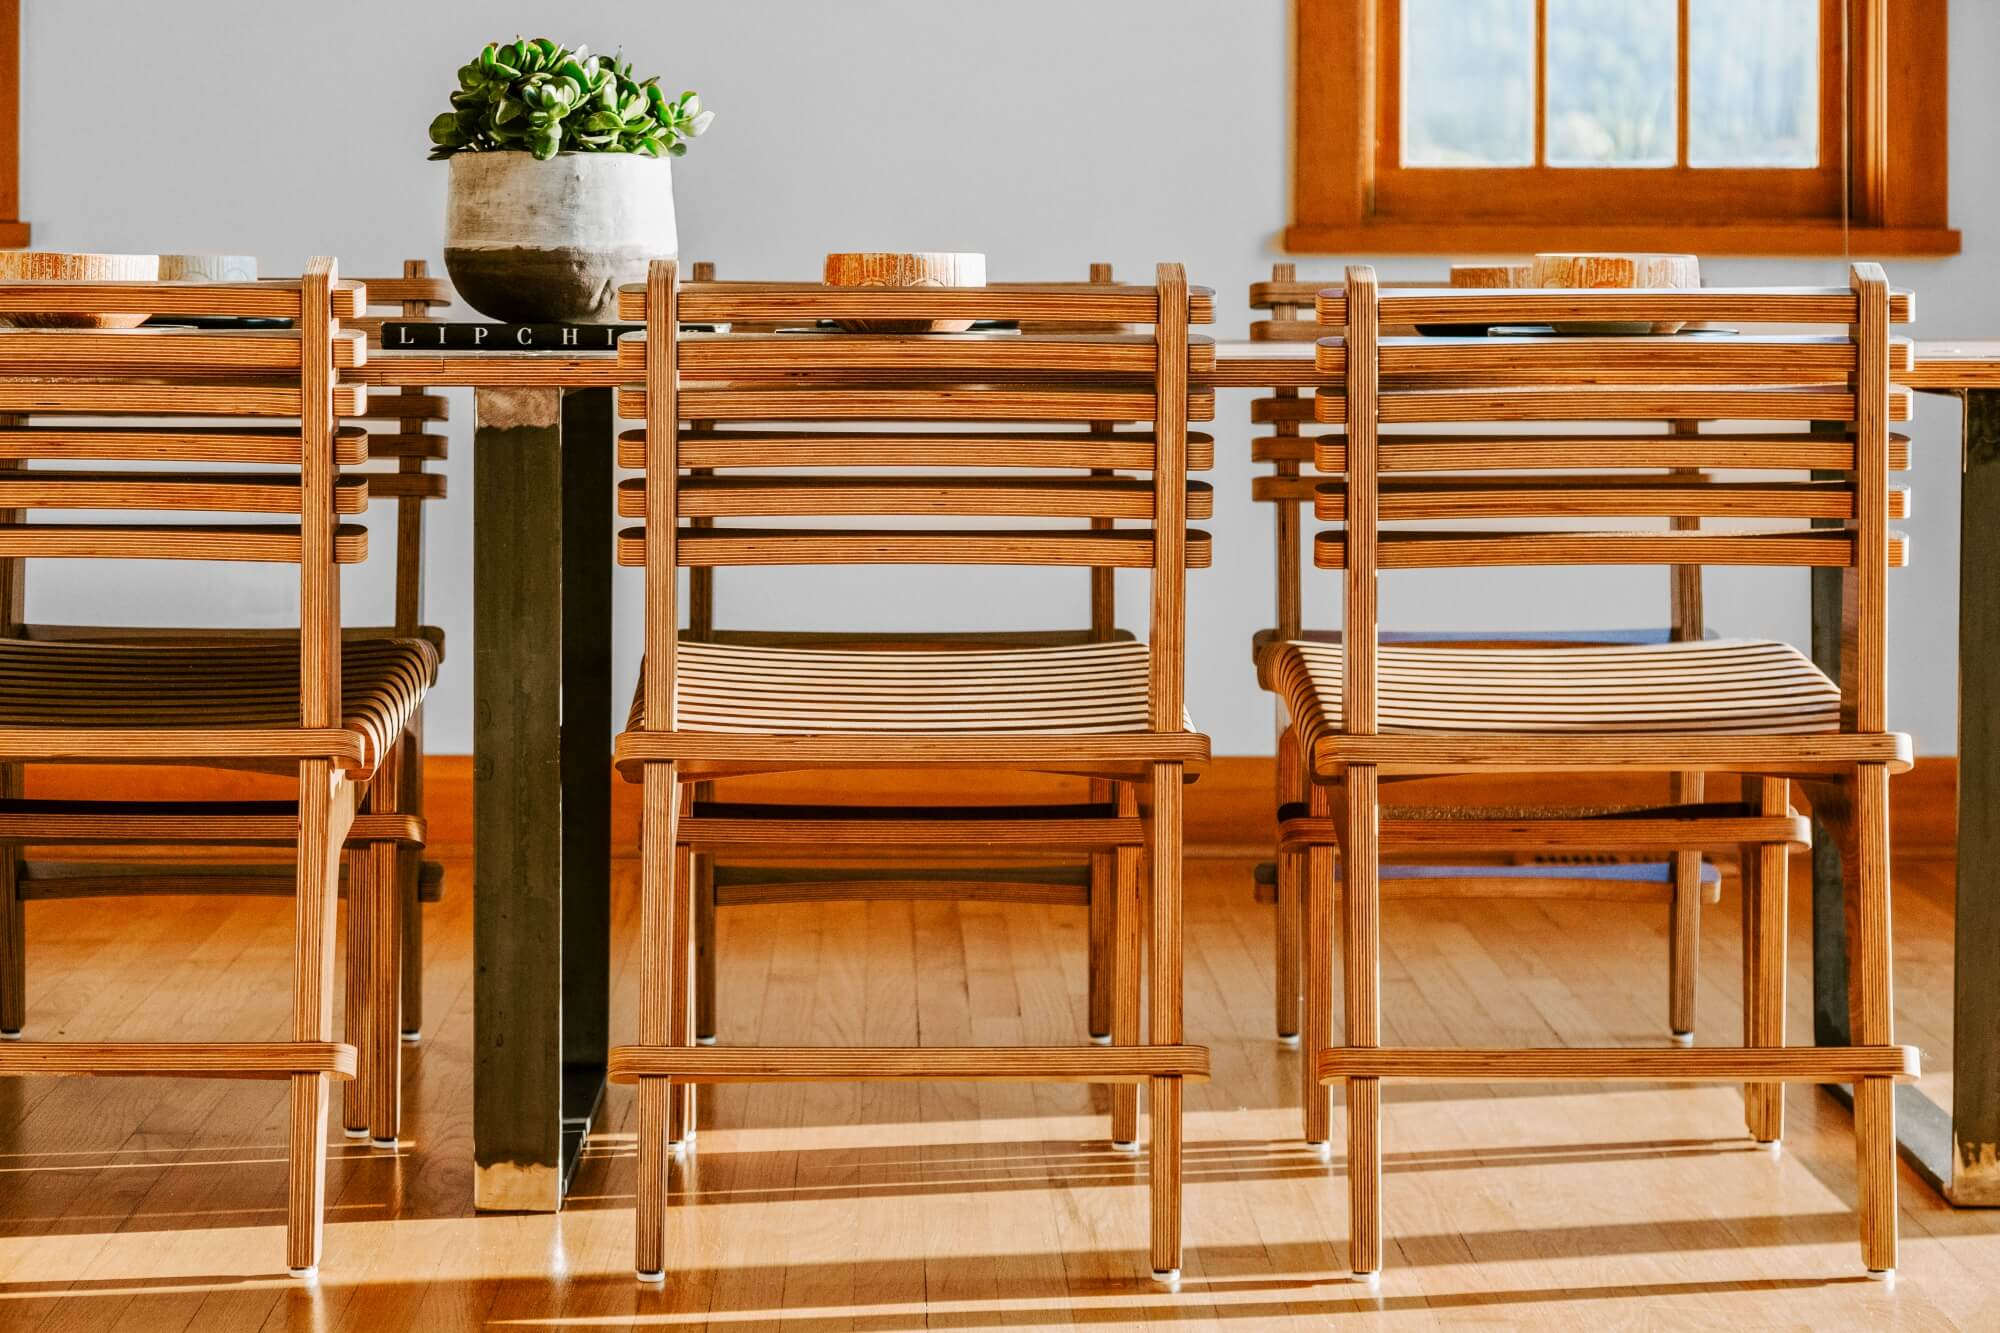 Dining table chairs made from responsibly sourced wood materials.